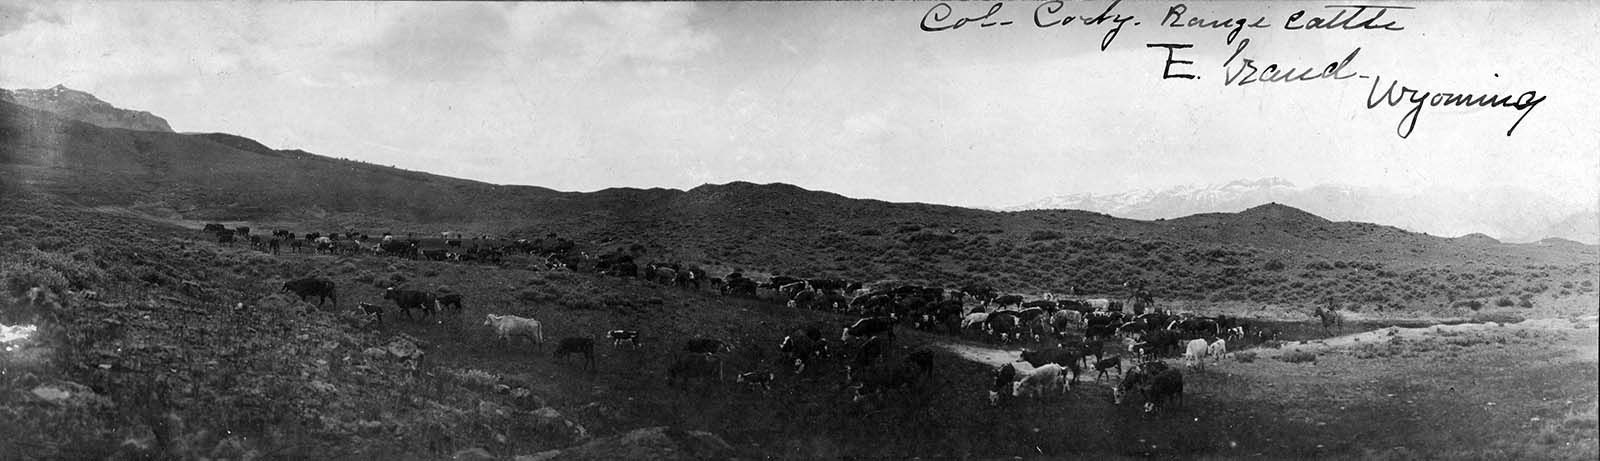 """William F. """"Buffalo Bill"""" Cody was one of the cattlemen on the South Fork: """"Col. Cody Range Cattle, TE Ranch, Wyoming."""" 1900-1920. MS 6 William F. Cody Collection, McCracken Research Library. P.6.1641"""